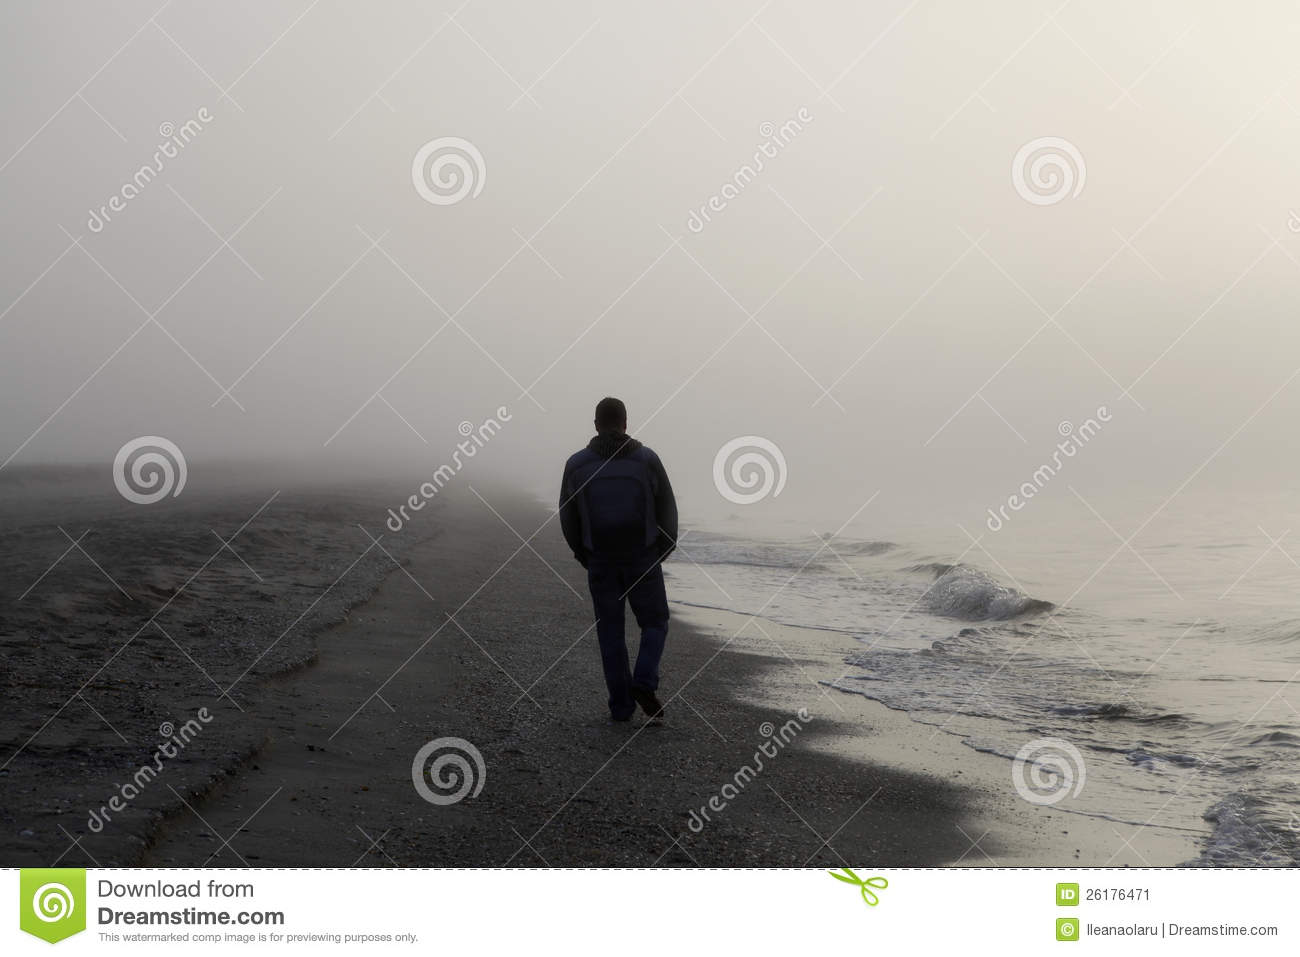 Sad Animation Wallpaper Lonely Man Walking On A Beach Stock Image Image 26176471